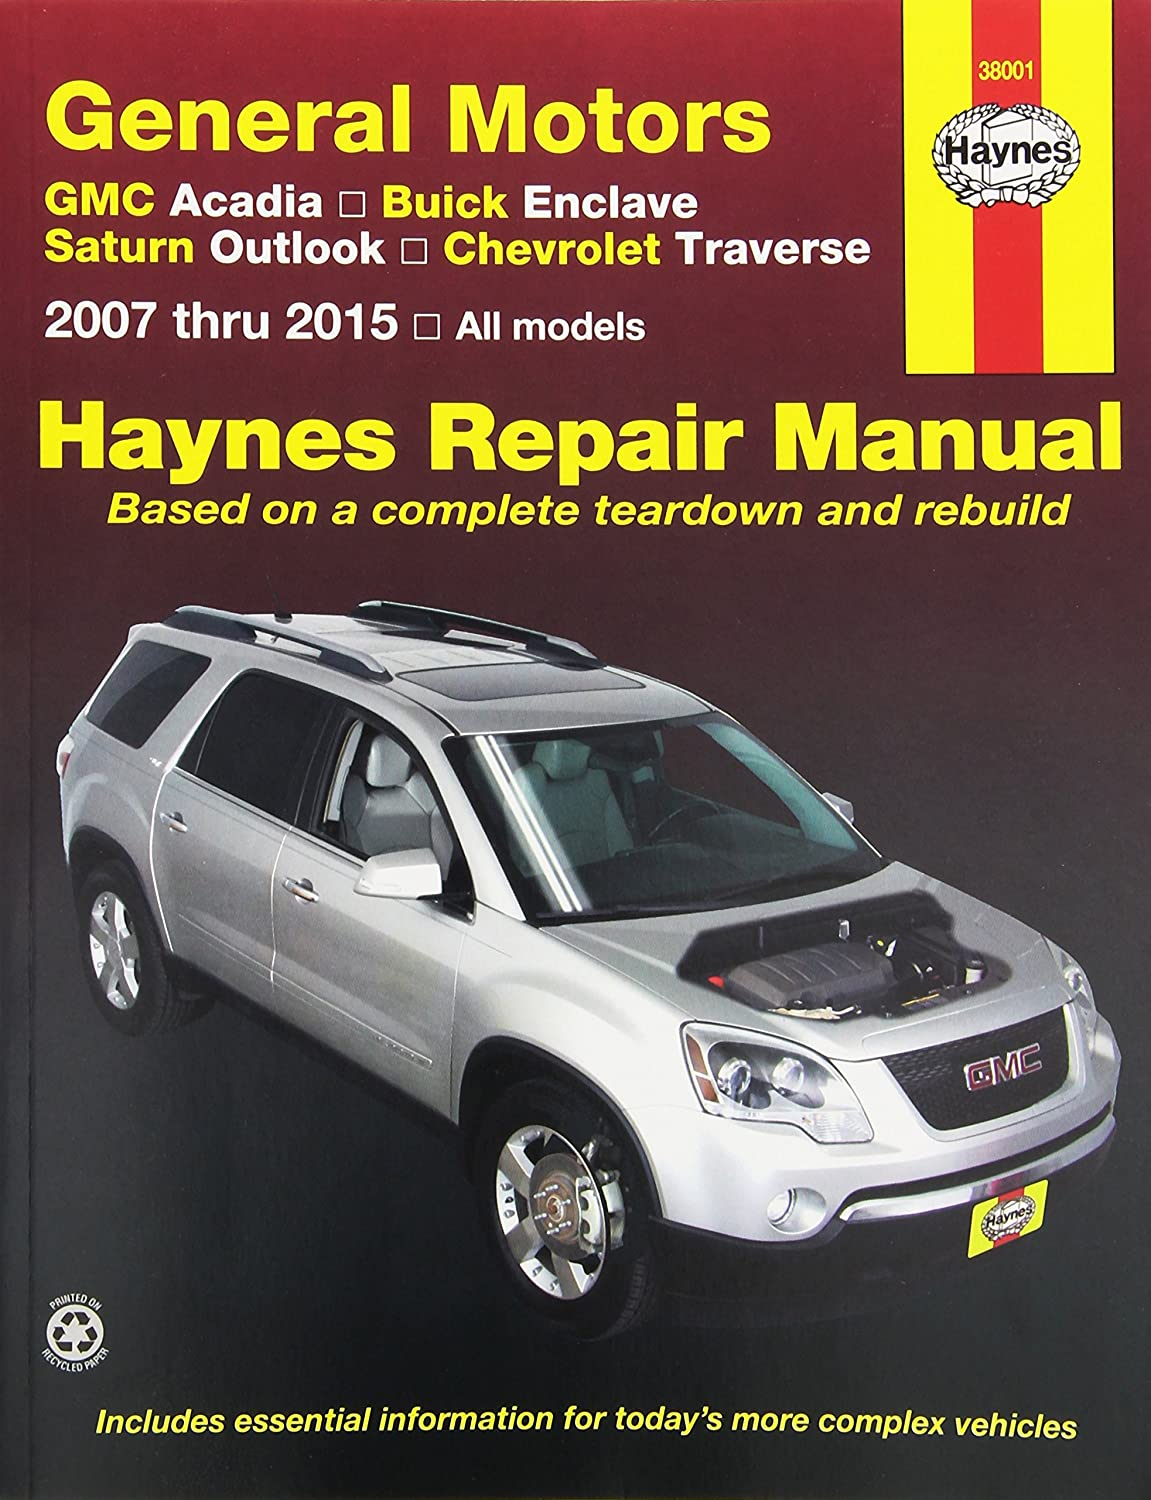 2001 Eclipse Repair Guide